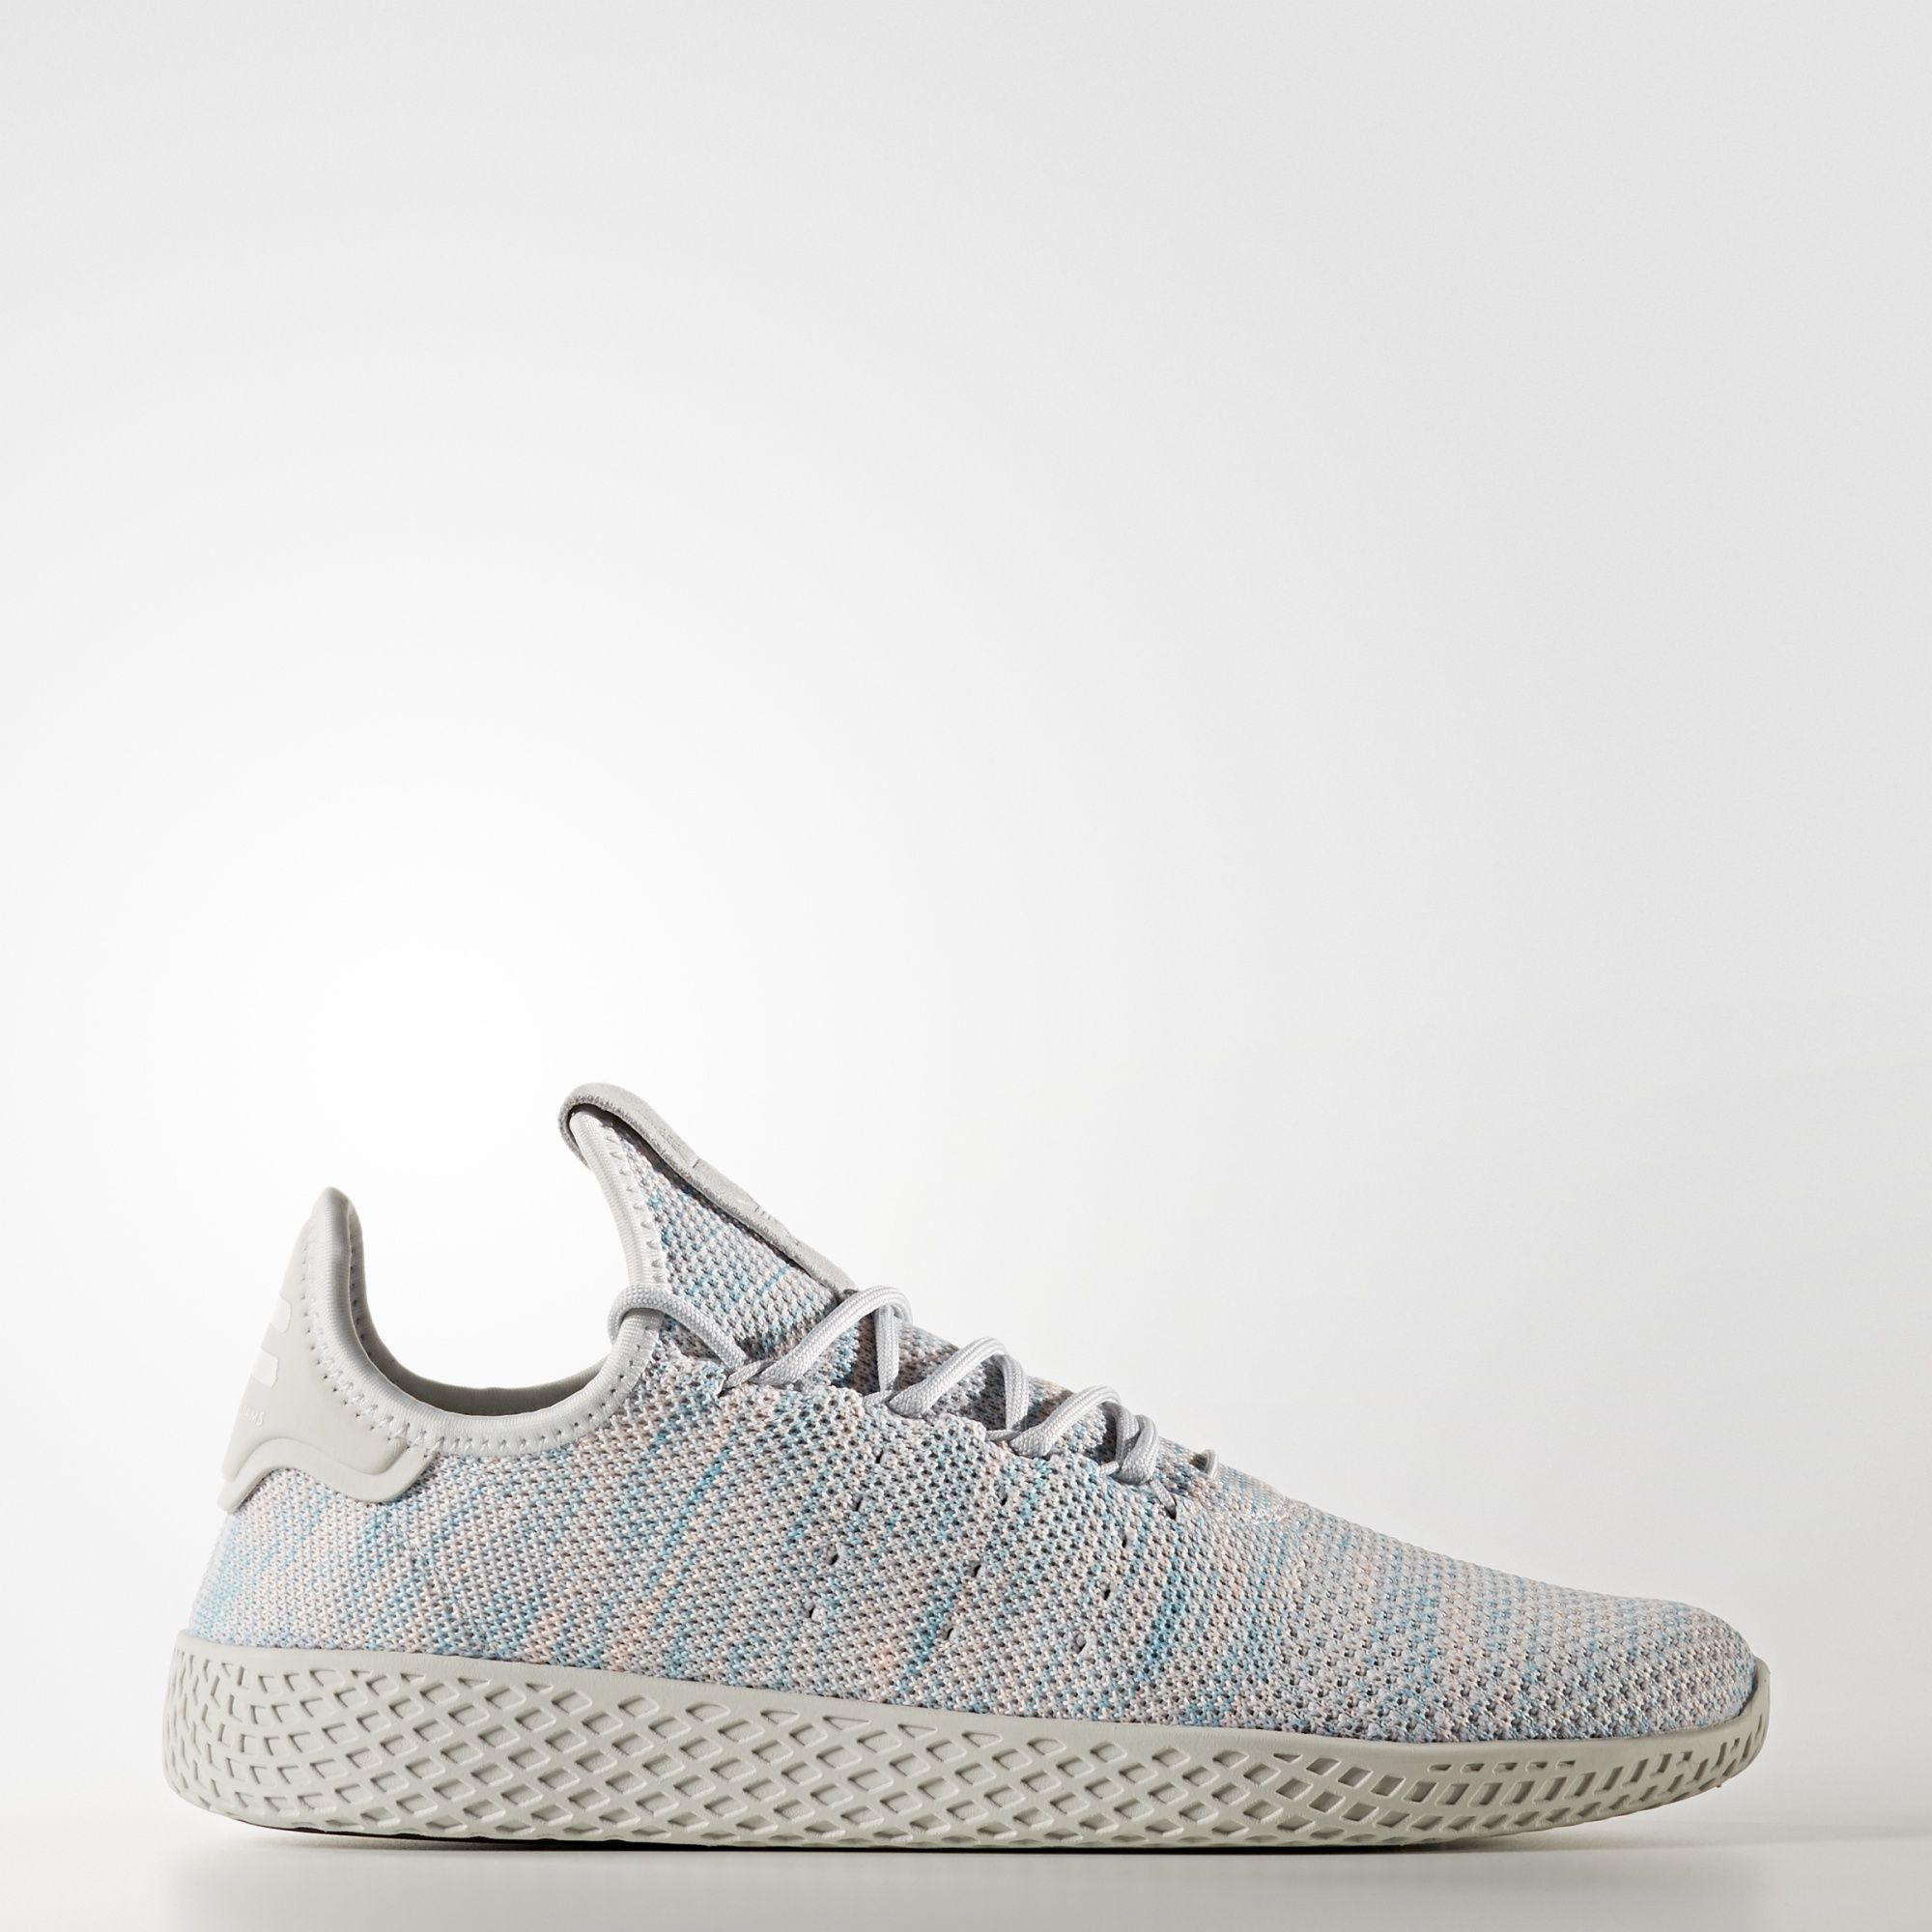 7d1bdec54 adidas - Pharrell Williams Tennis Hu Shoes